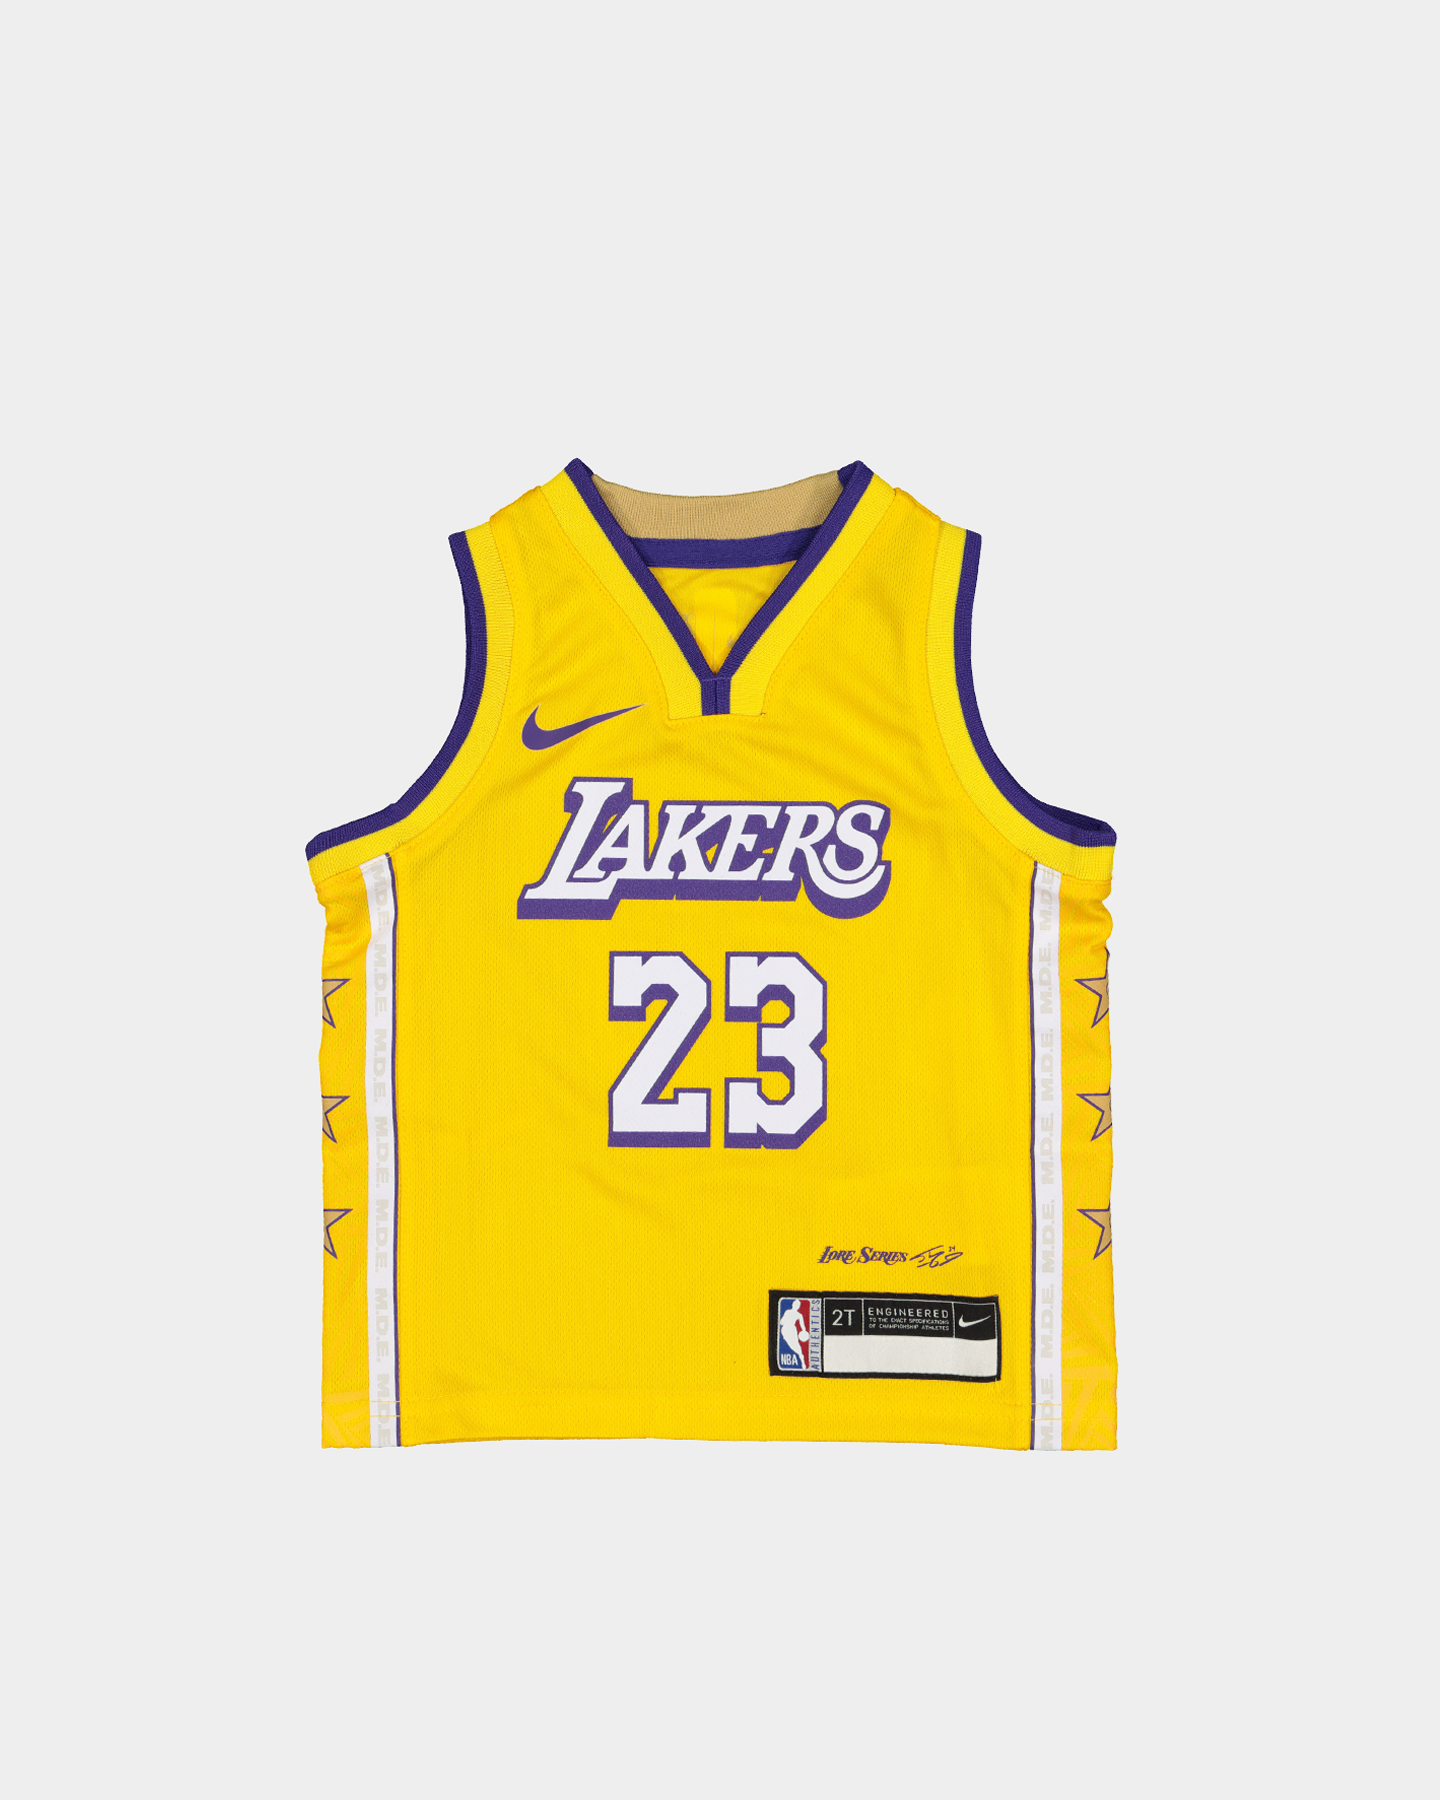 4t lakers jersey Shop Clothing & Shoes Online